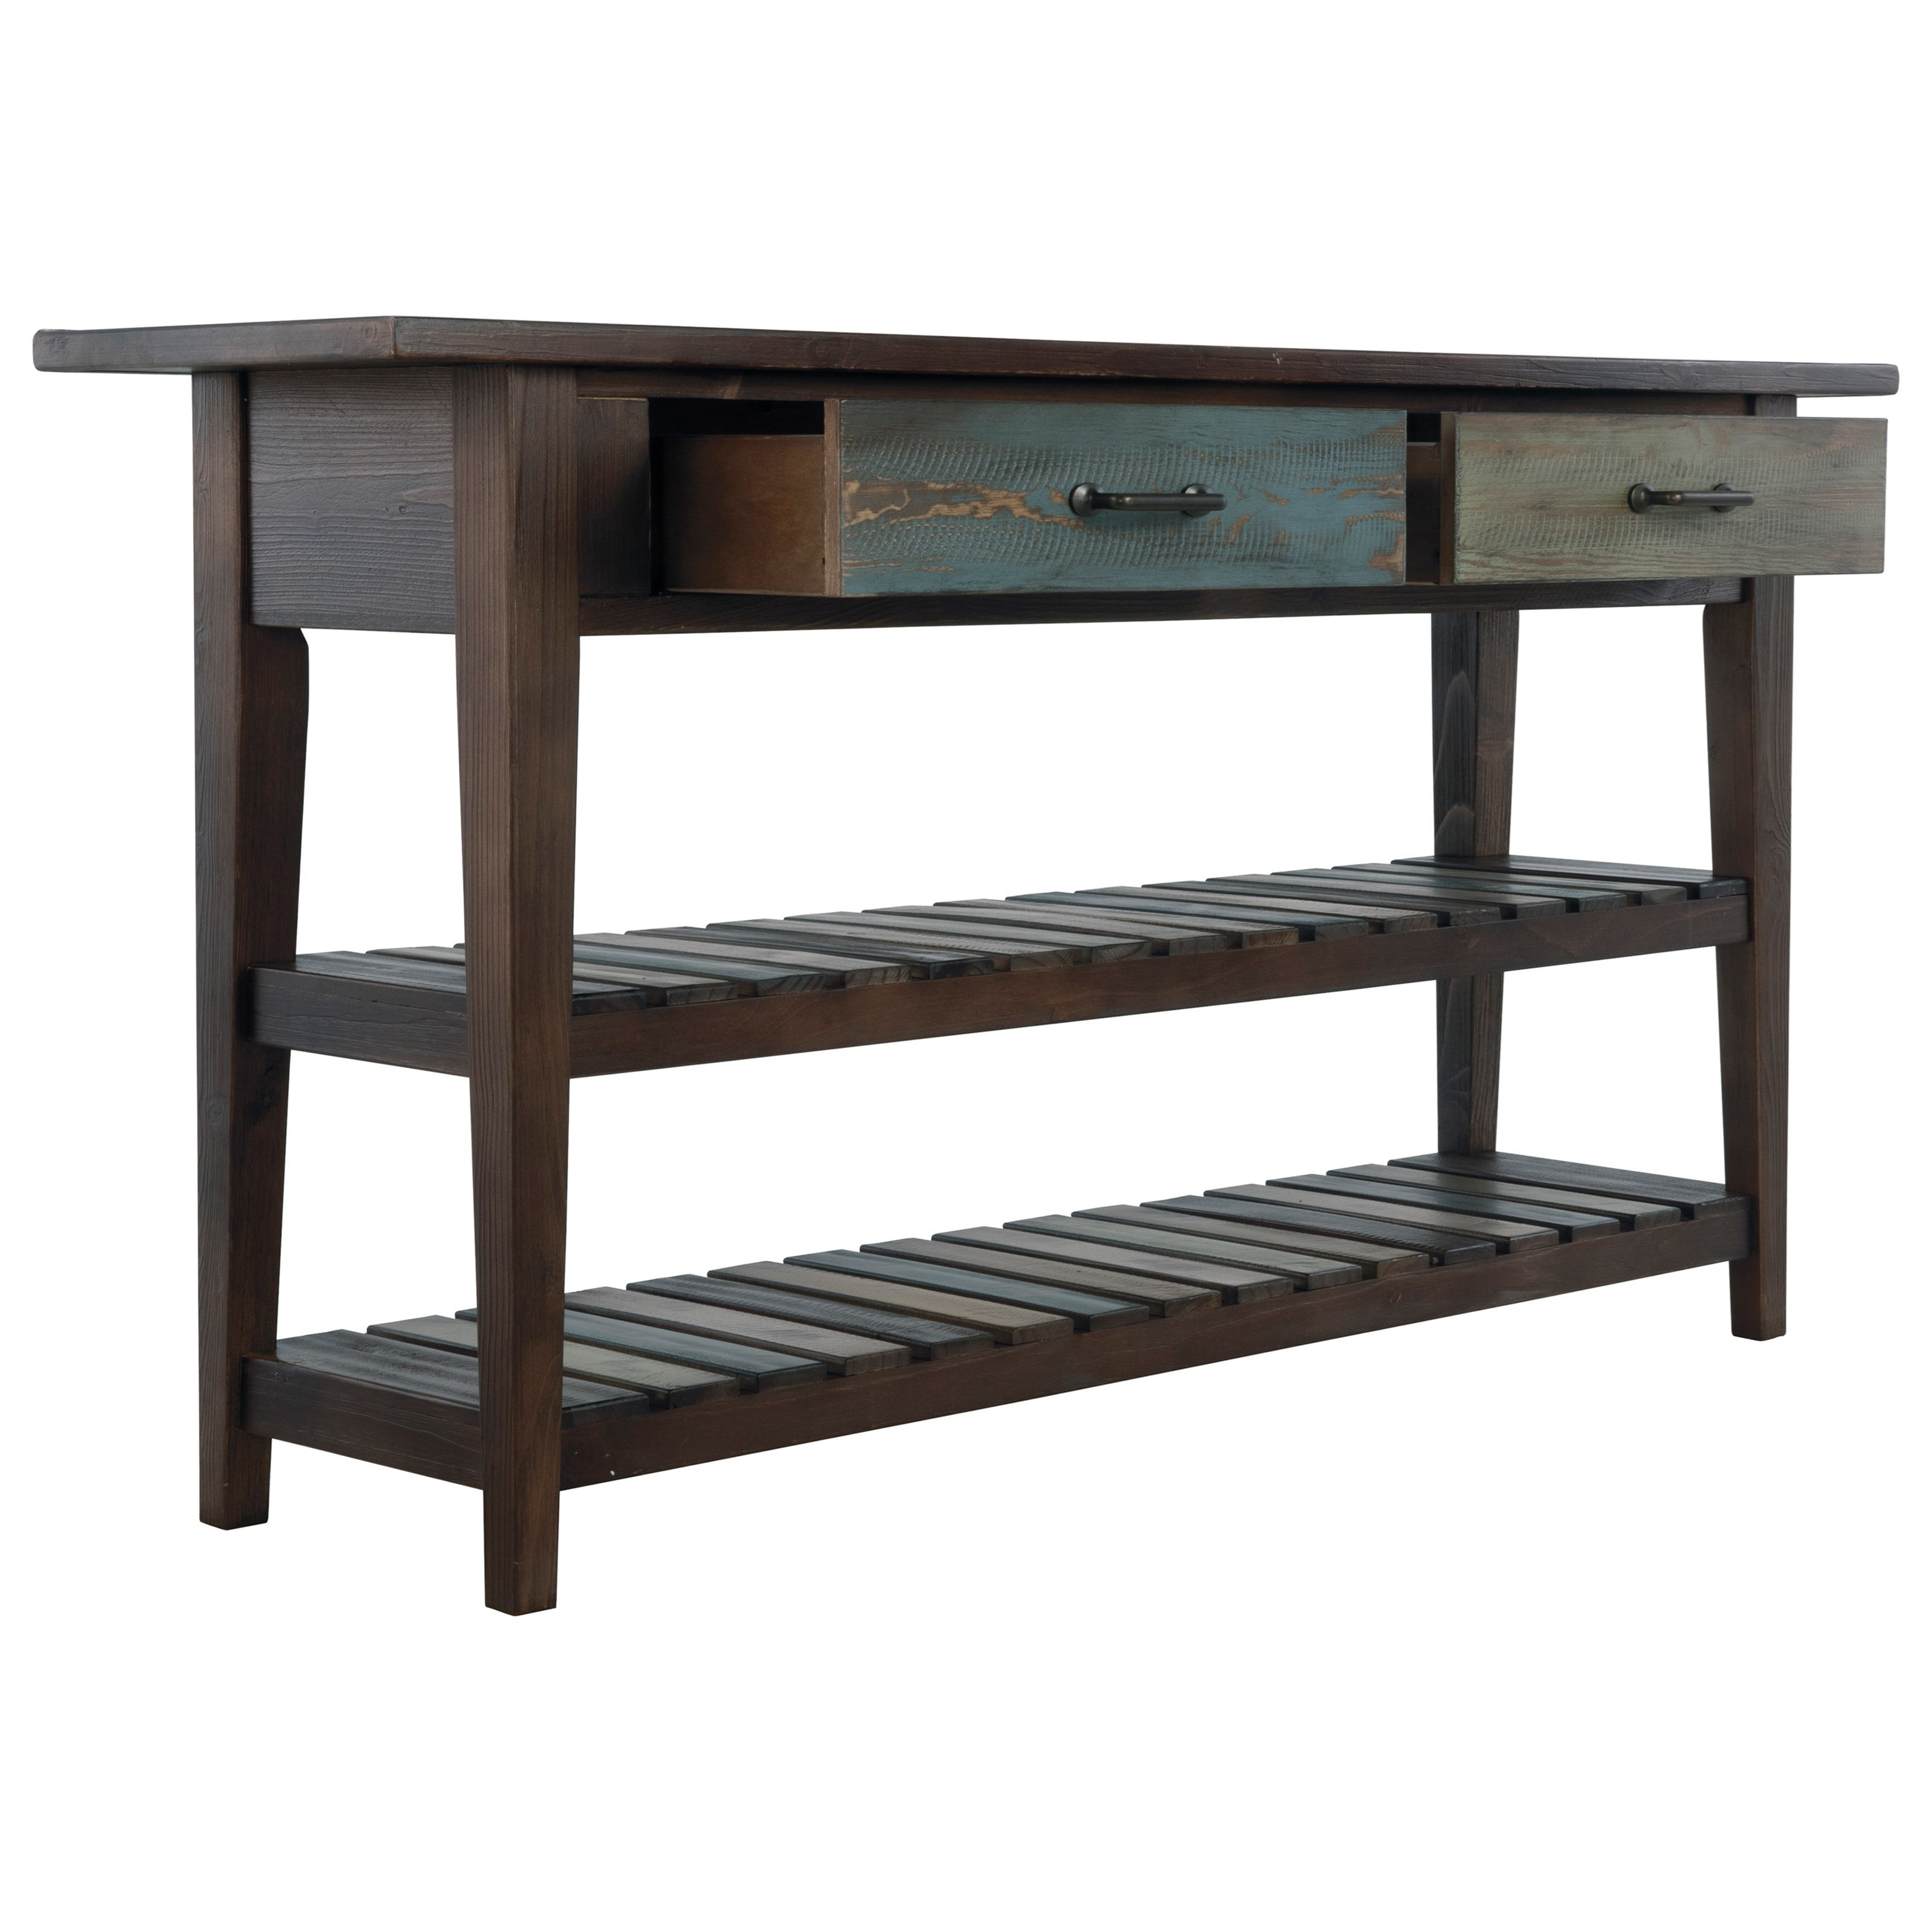 Signature Design By Ashley Mestler T580 4 Sofa Table With